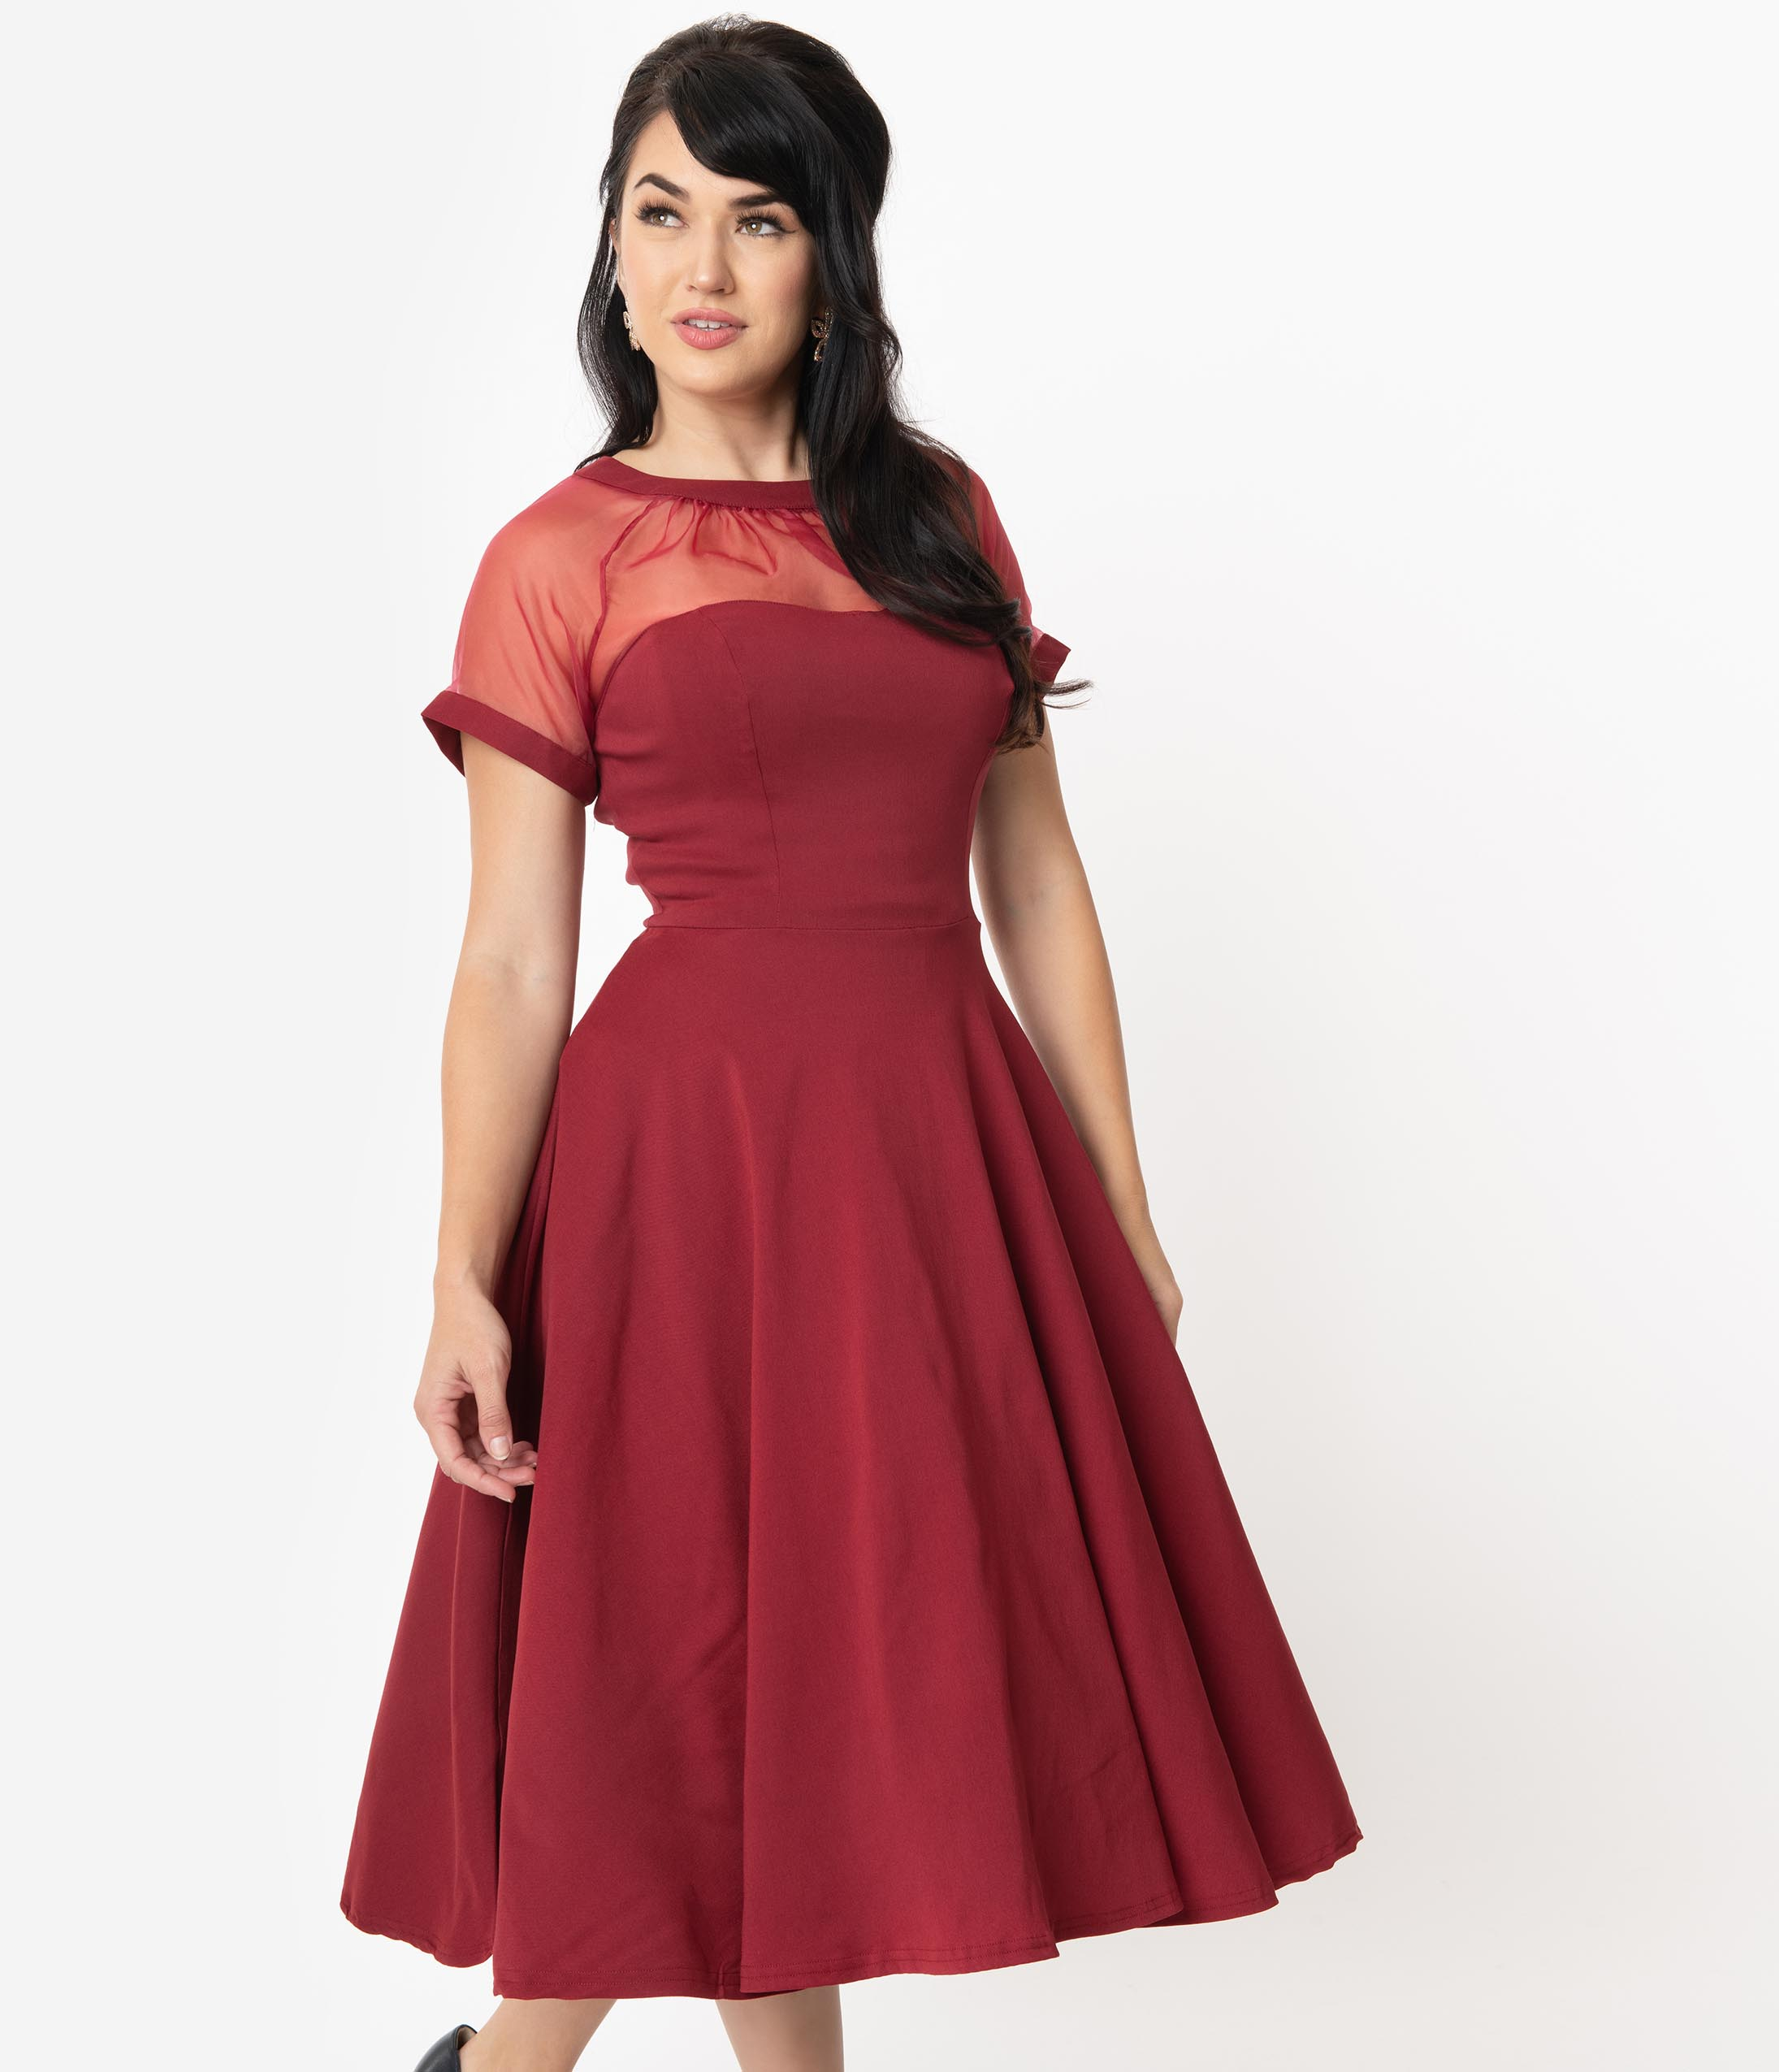 Vintage 50s Dresses: Best 1950s Dress Styles Unique Vintage 1950S Burgundy Shirelle Swing Dress $78.00 AT vintagedancer.com